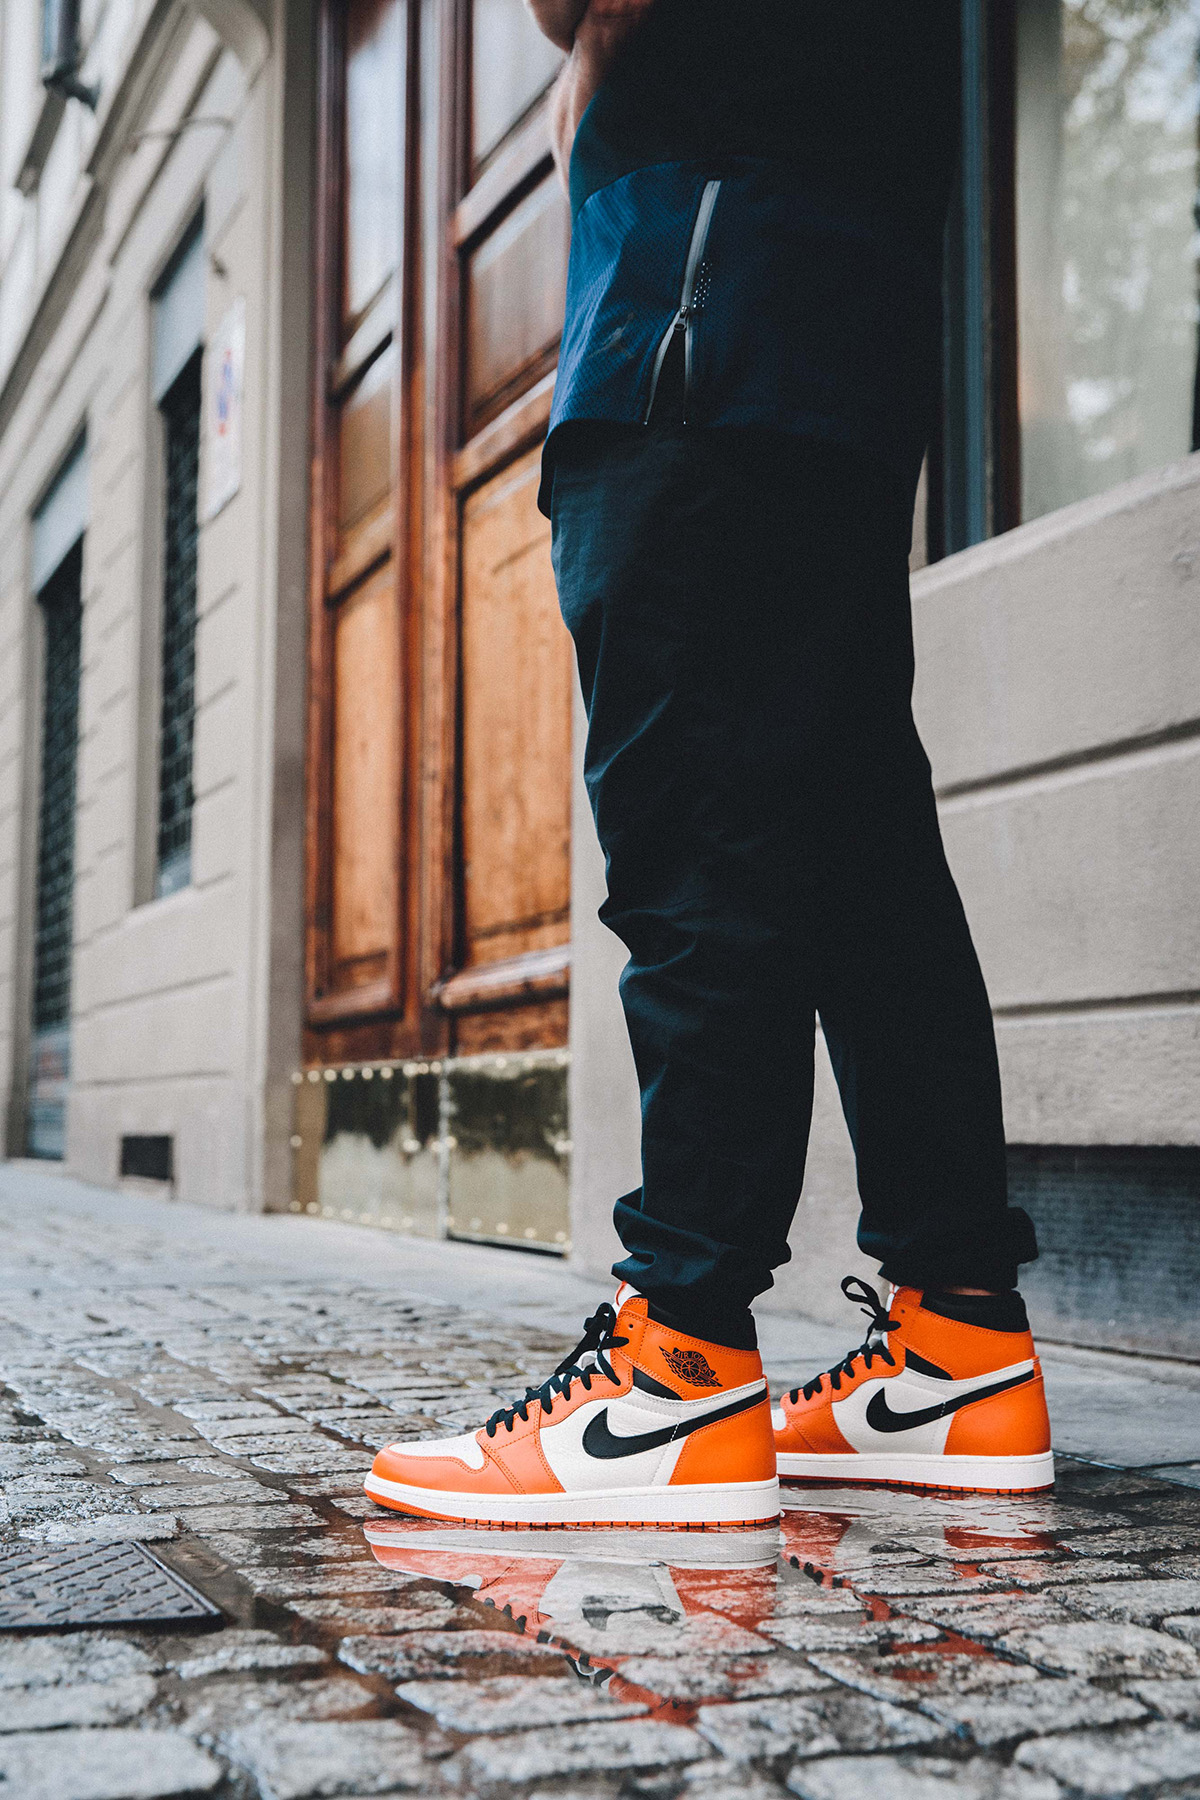 buy online efeca 78a91 air jordan 31 shattered backboard on feet